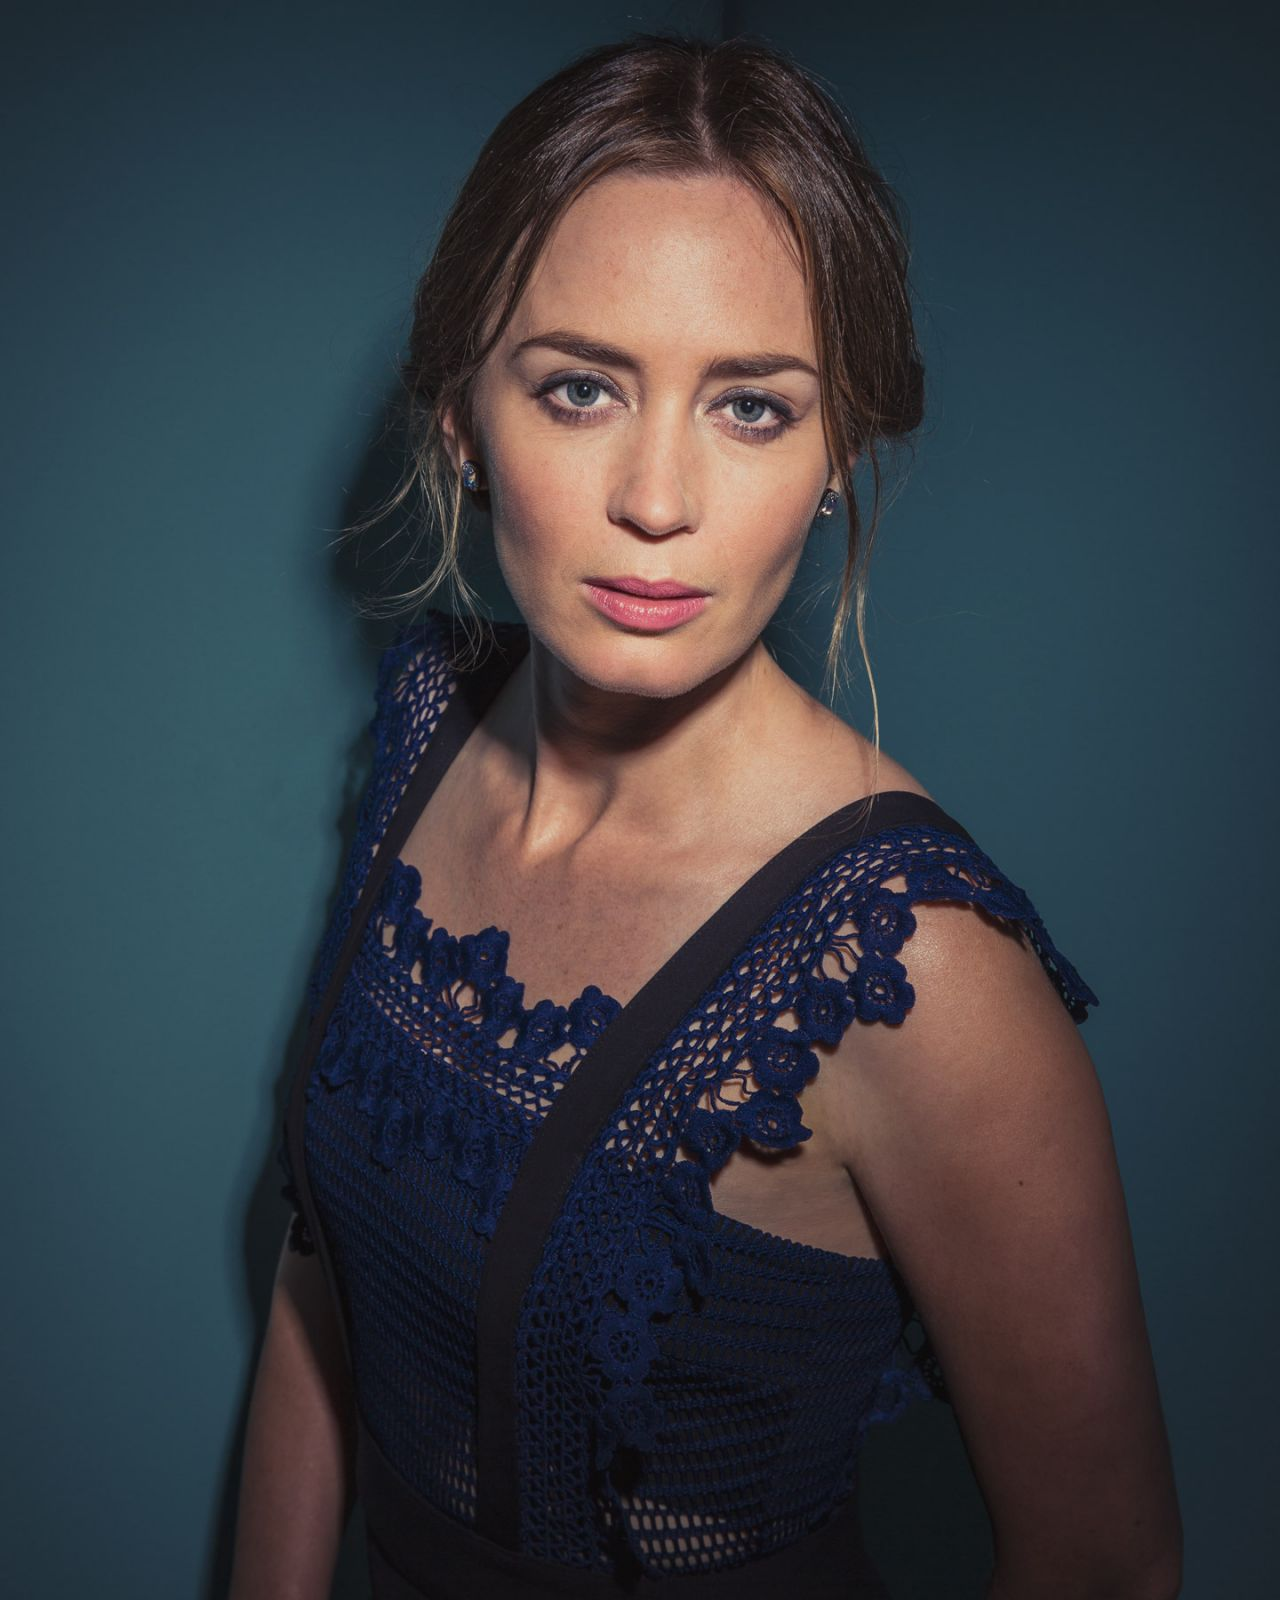 Emily Blunt Sicario Photoshoot For Toronto